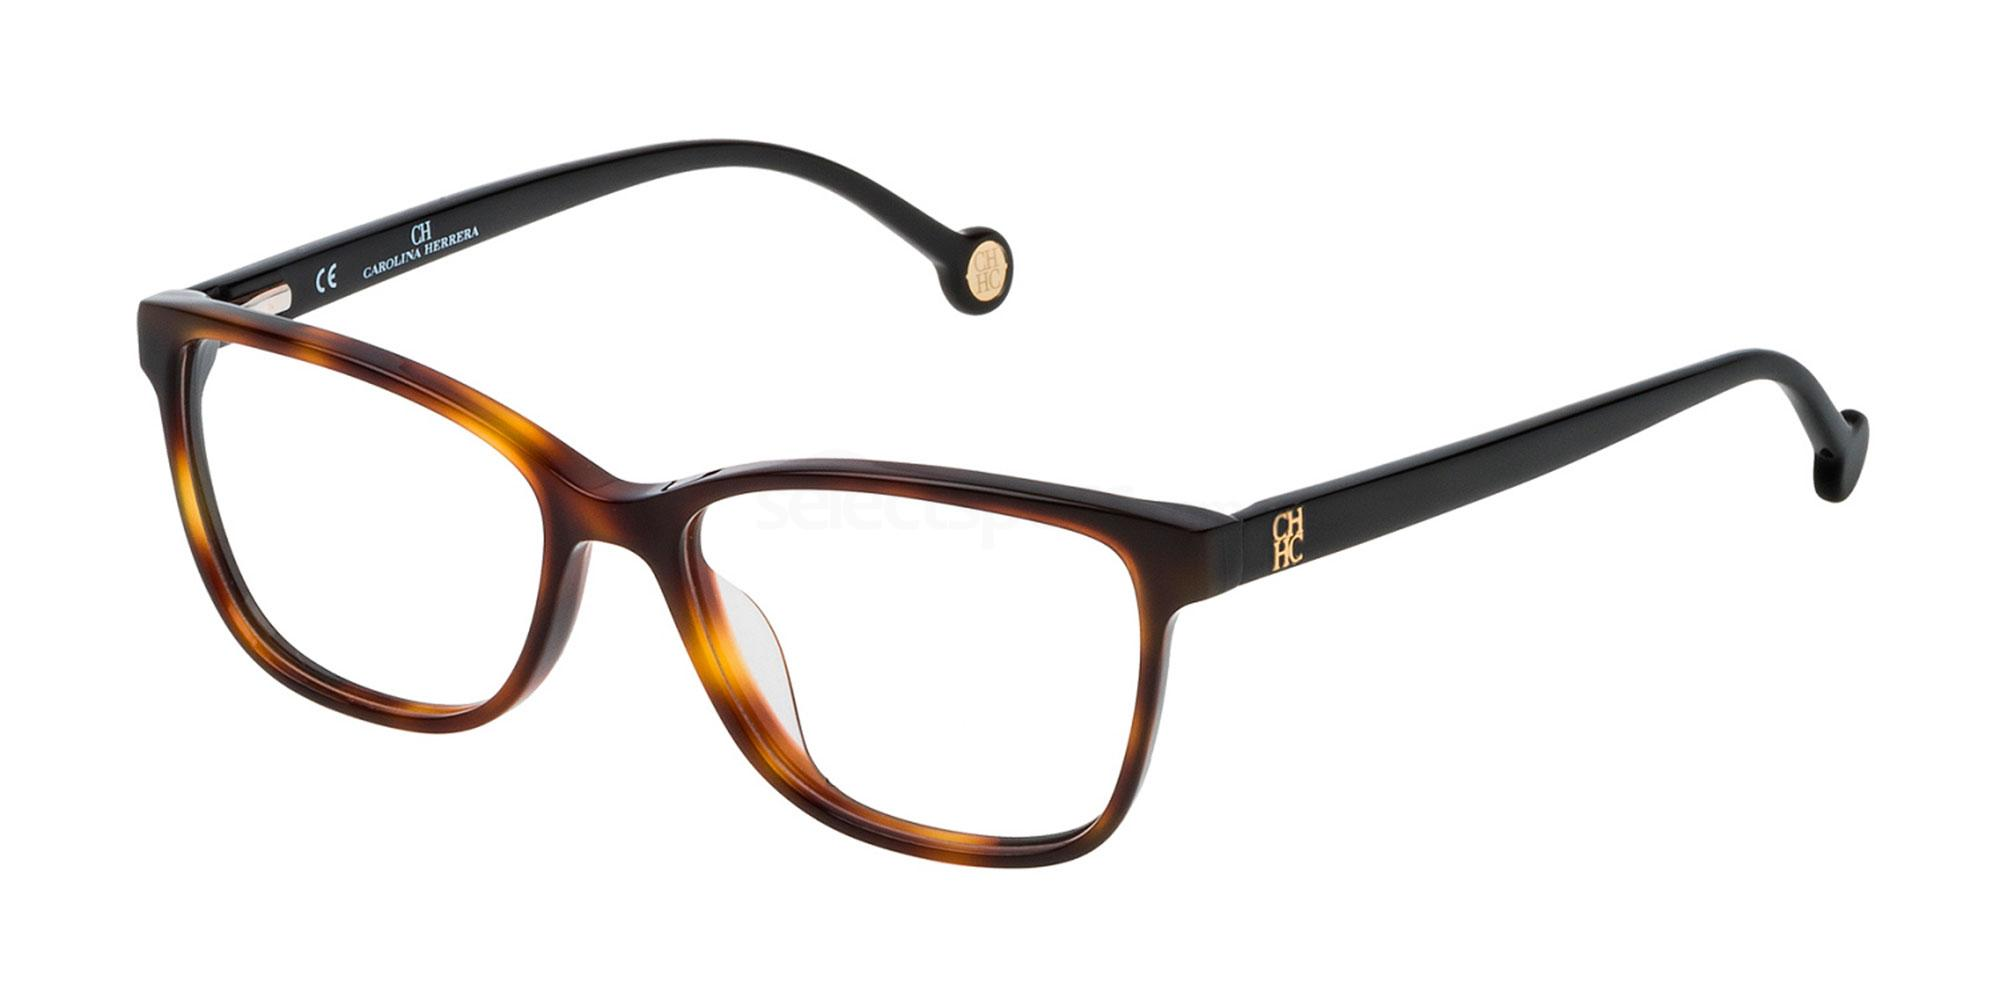 0752 VHE719L Glasses, CH Carolina Herrera